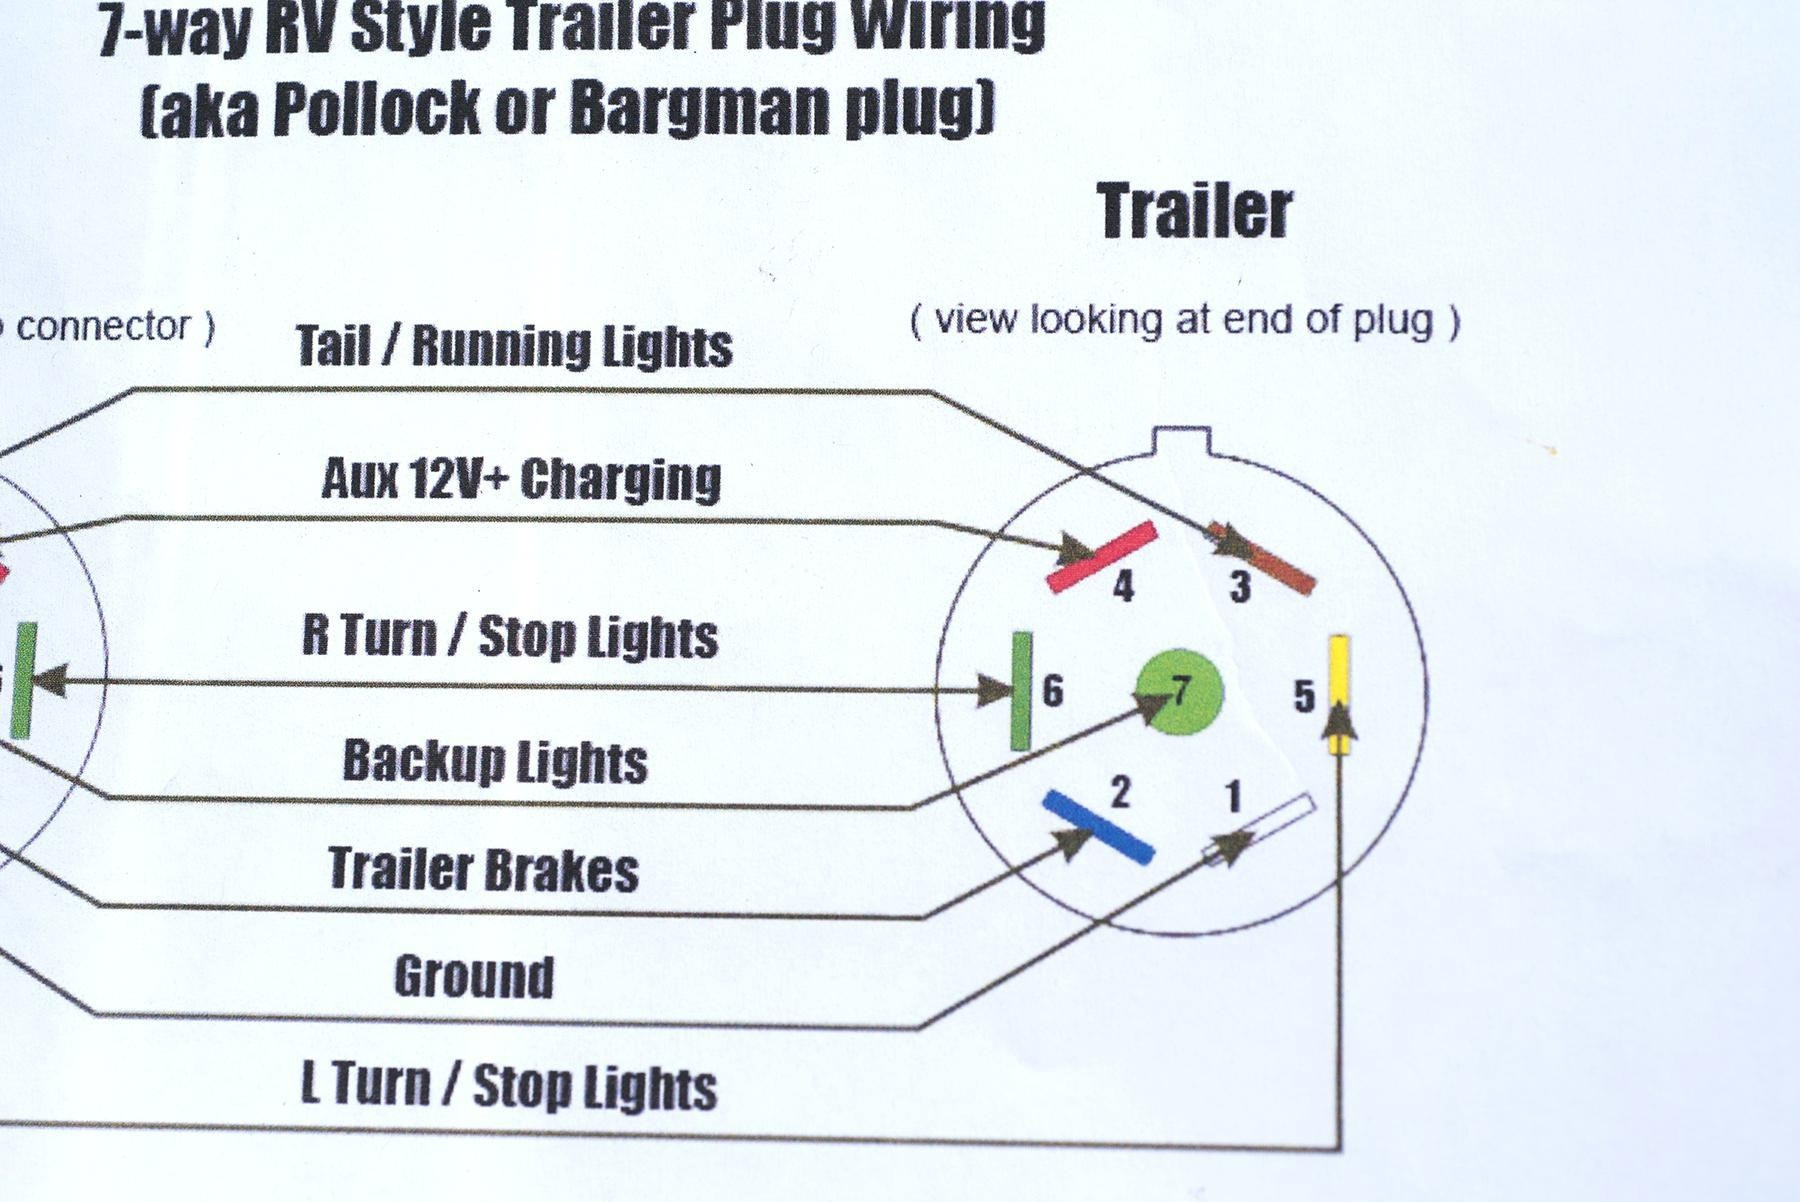 4 Wire Trailer Wiring Diagram Dodge | Wiring Diagram - 7 Way Trailer Plug Wiring Diagram Dodge